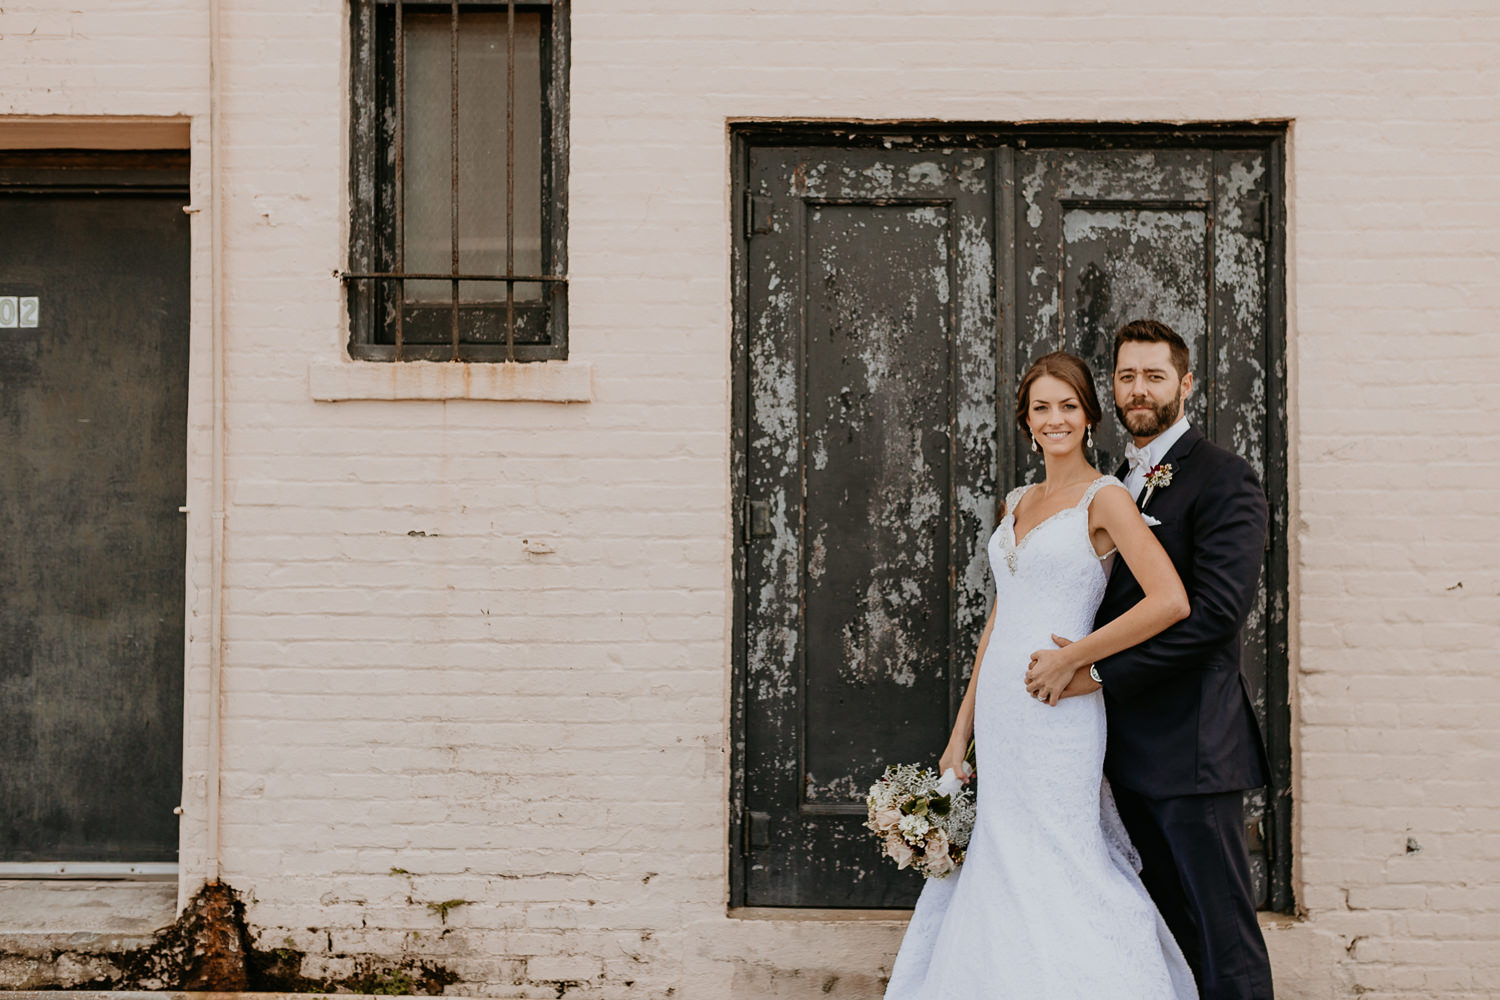 groom behind the bride, she's holding her flowers, posing in front of wooden door